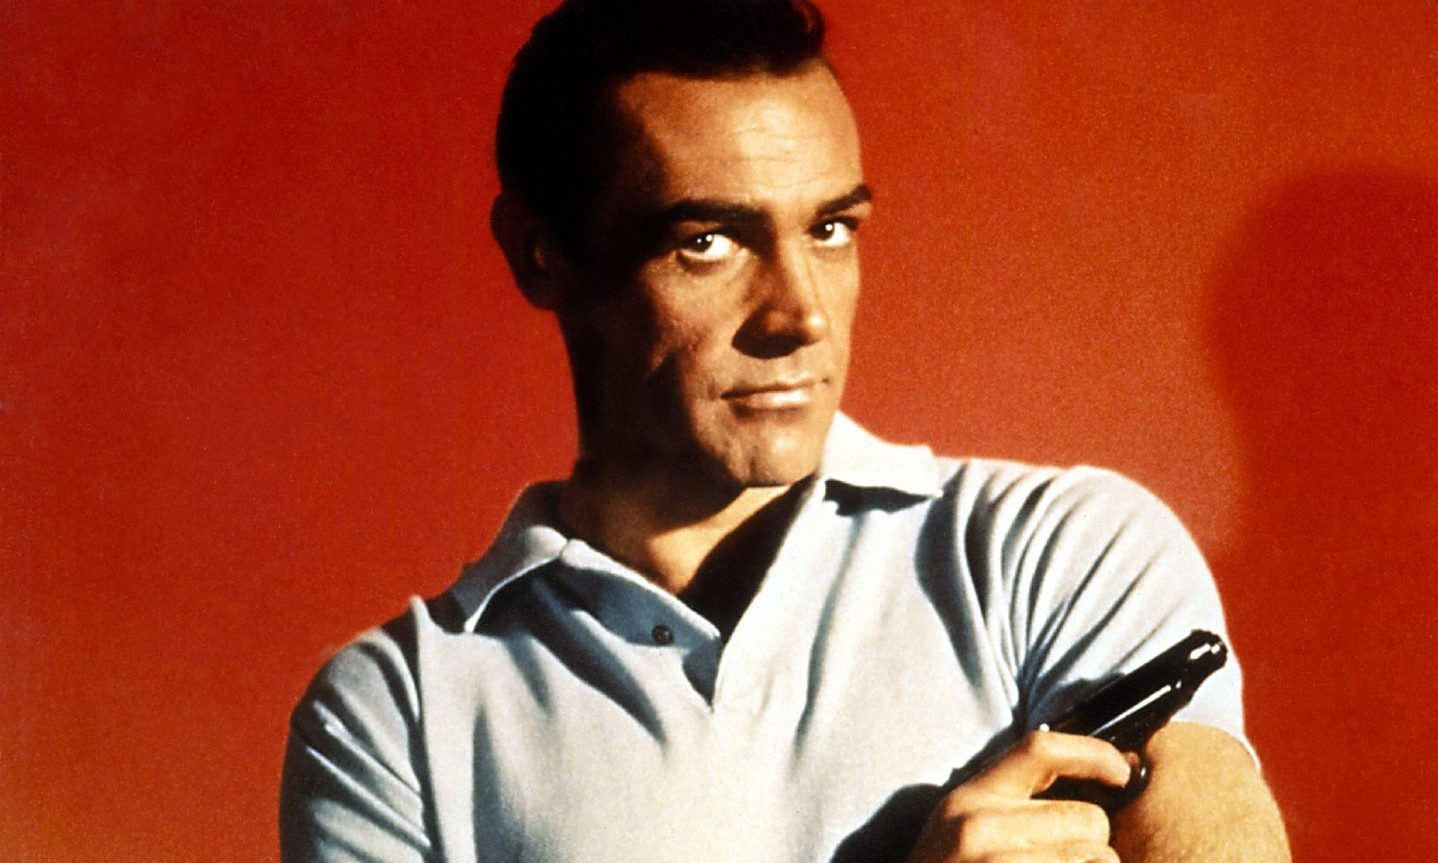 James Bond legend Sir Sean Connery dies aged 90